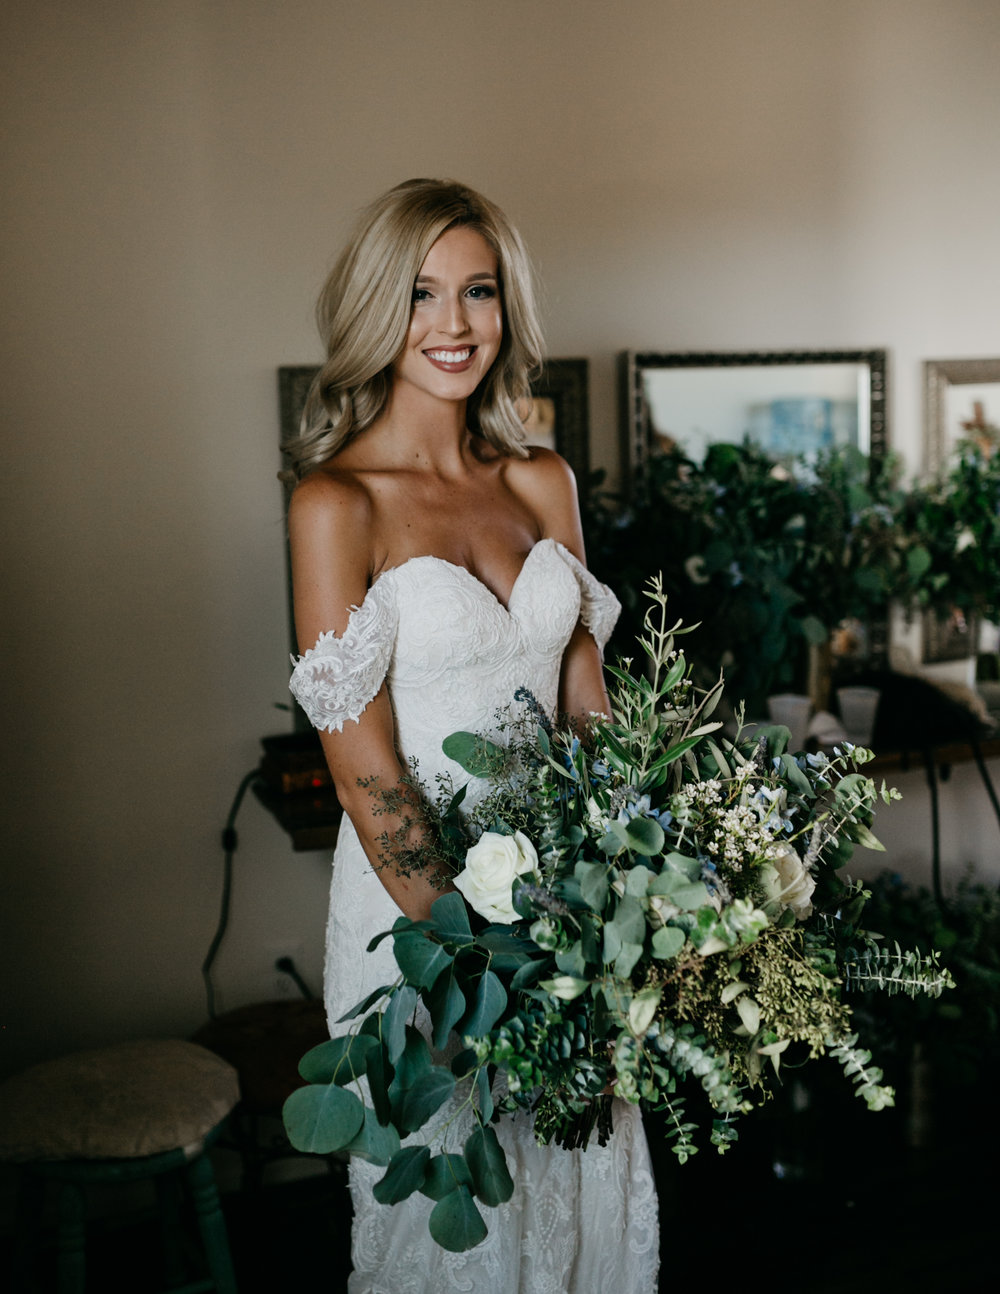 All You Need is Love and Doughnuts!  - with Tremaine Ranch - Arizona Wedding & Event, Vintage, Furniture, Tableware, & Specialty Rentals in Phoenix, Tucson, Flagstaff, Sedona, Tempe, Chandler, Mesa, Gilbert, Prescott, Payson5.jpg